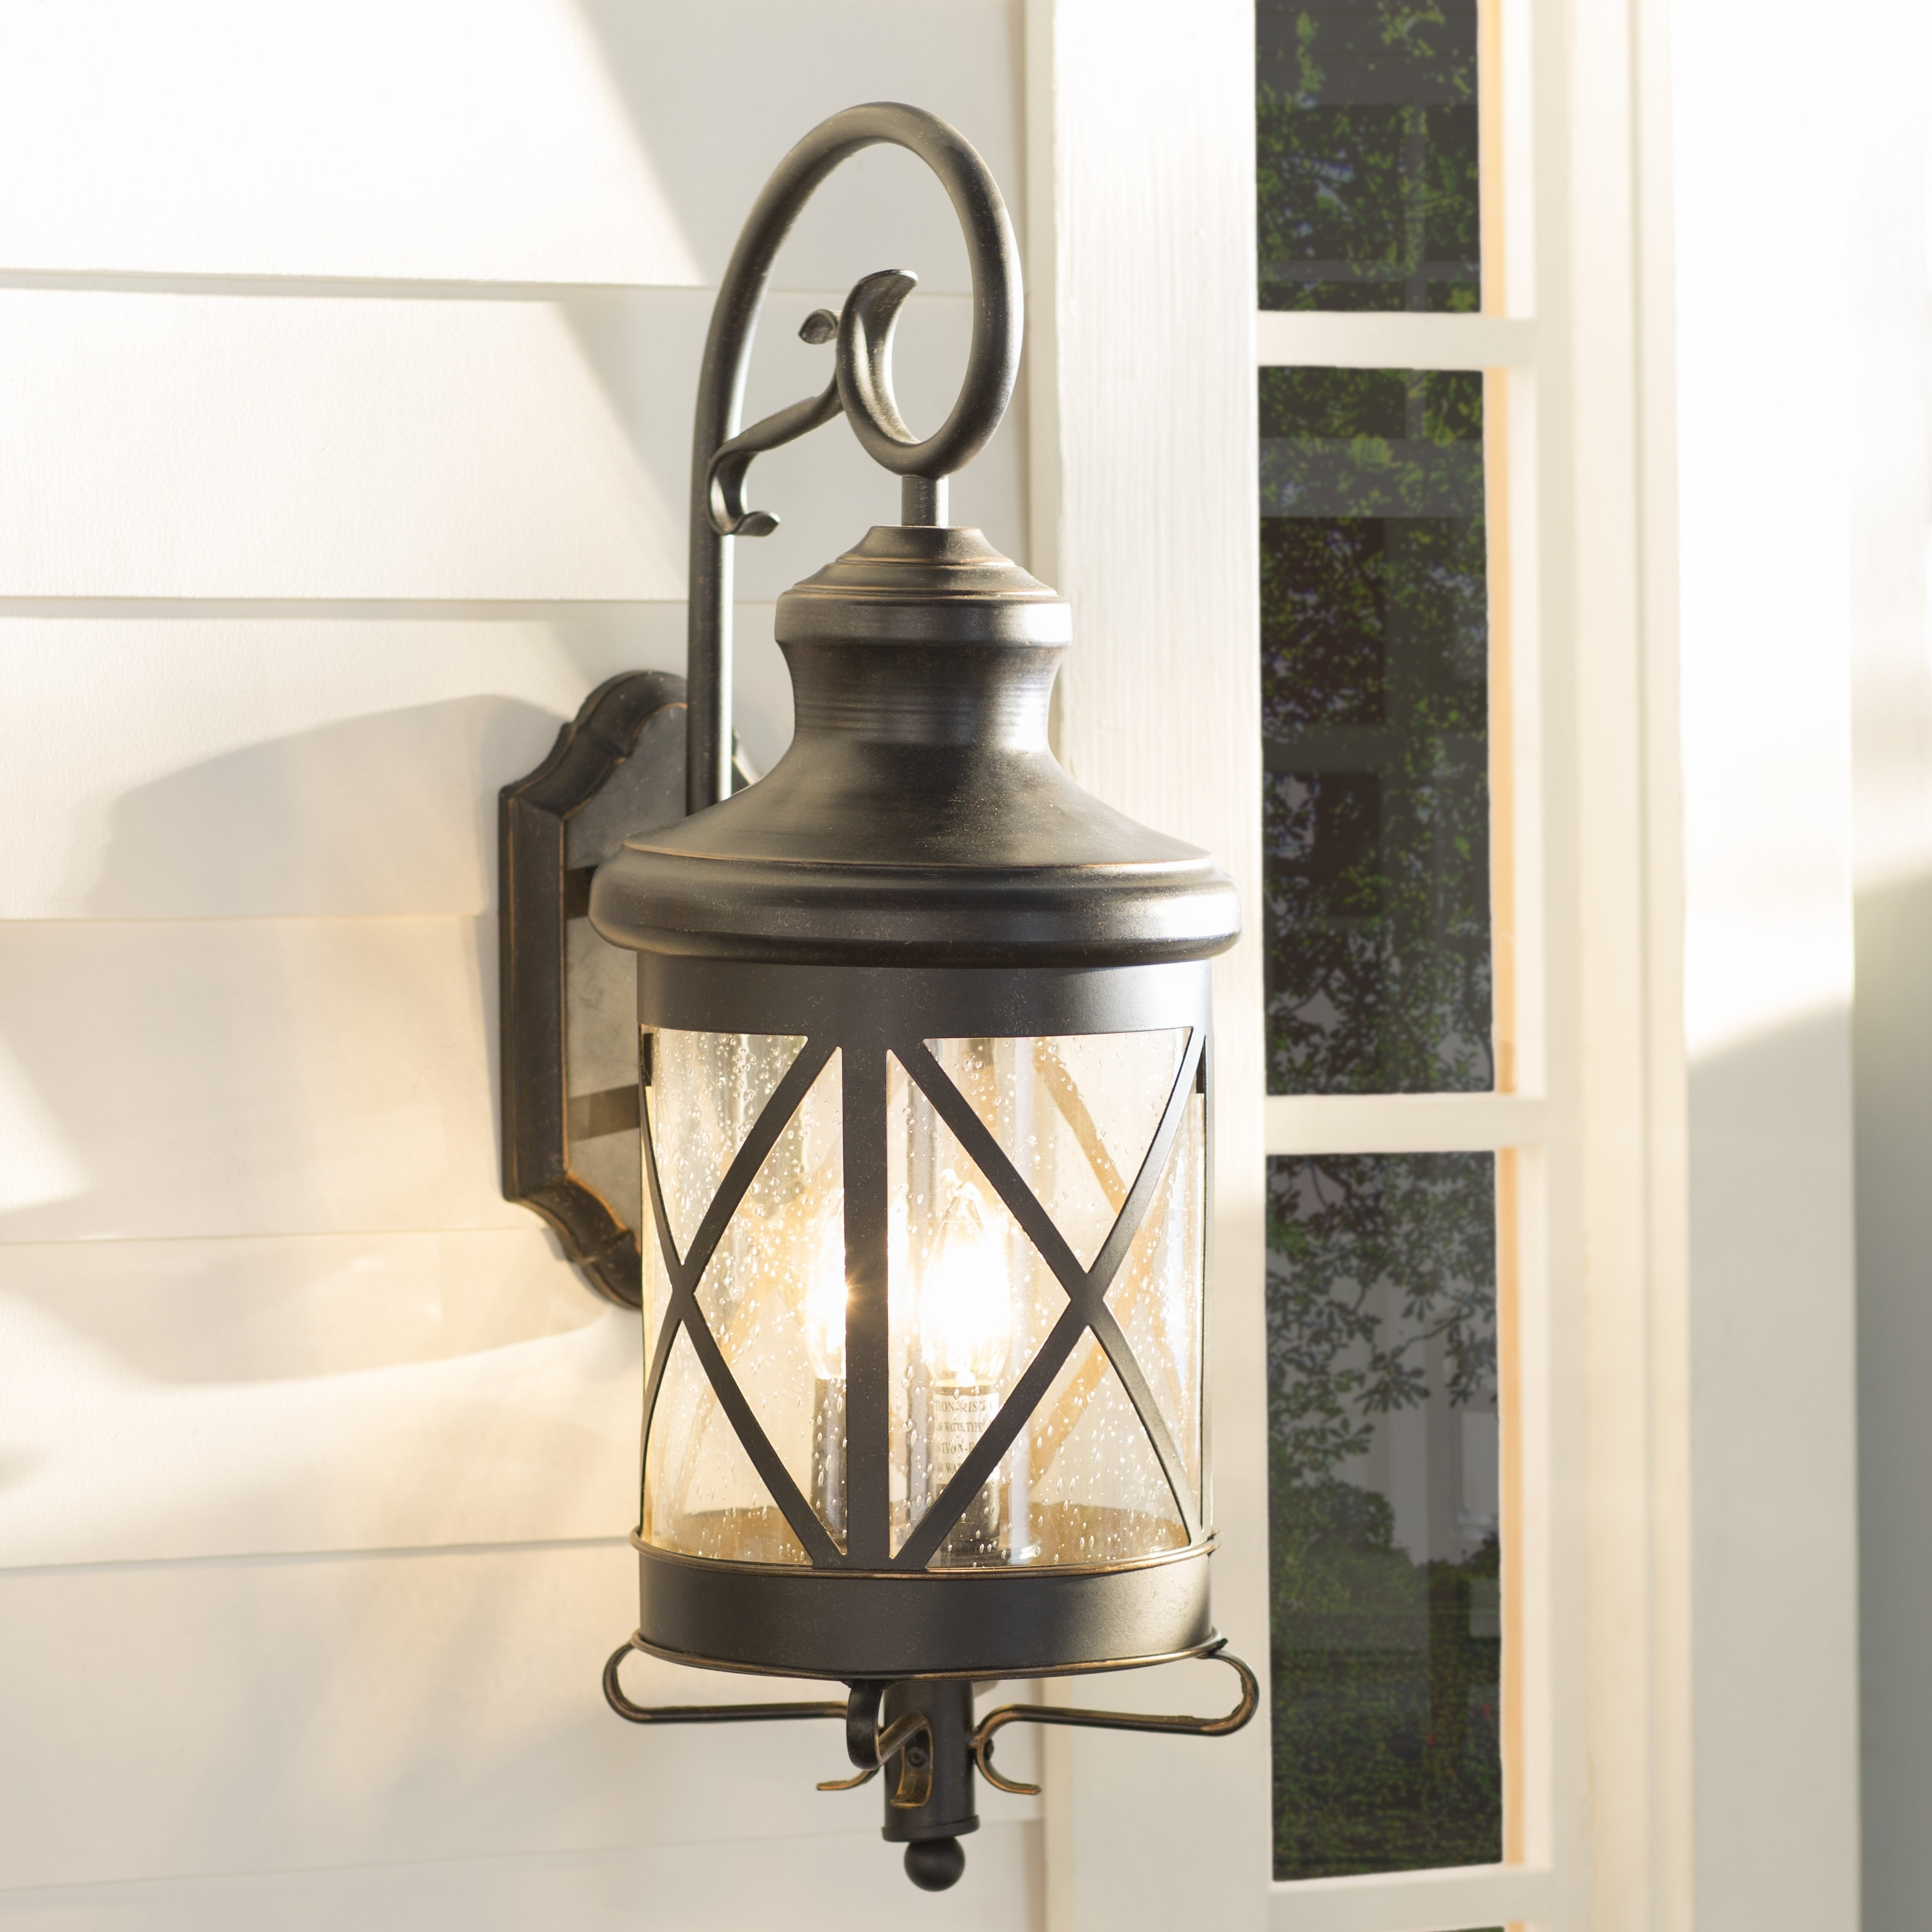 Three Posts Fairbury Outdoor Wall Lantern & Reviews | Wayfair For Outdoor Vinyl Lanterns (View 19 of 20)